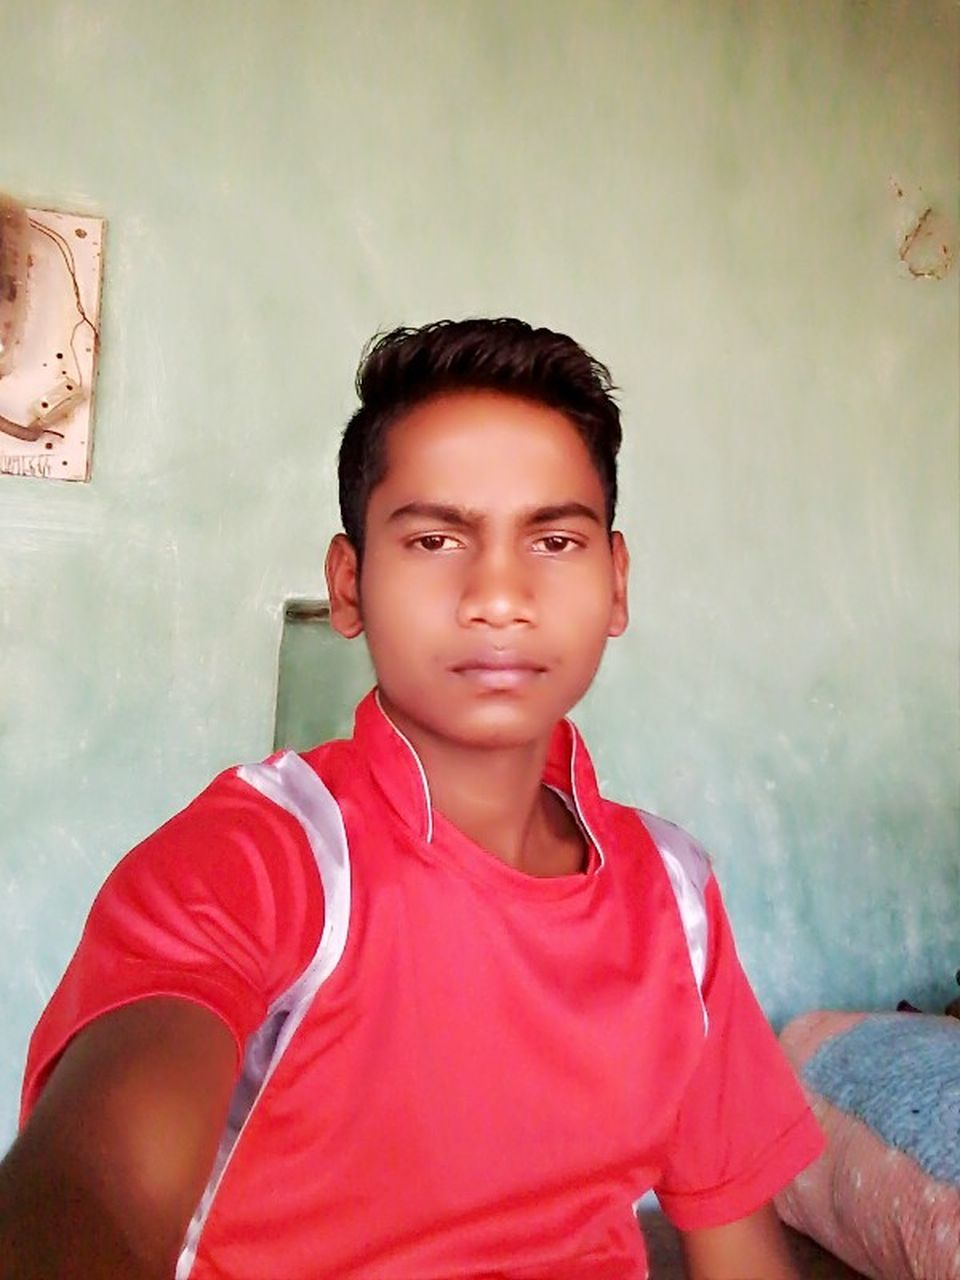 one person, real people, casual clothing, looking at camera, leisure activity, childhood, portrait, front view, teenager, lifestyles, boys, day, indoors, one teenage boy only, close-up, people